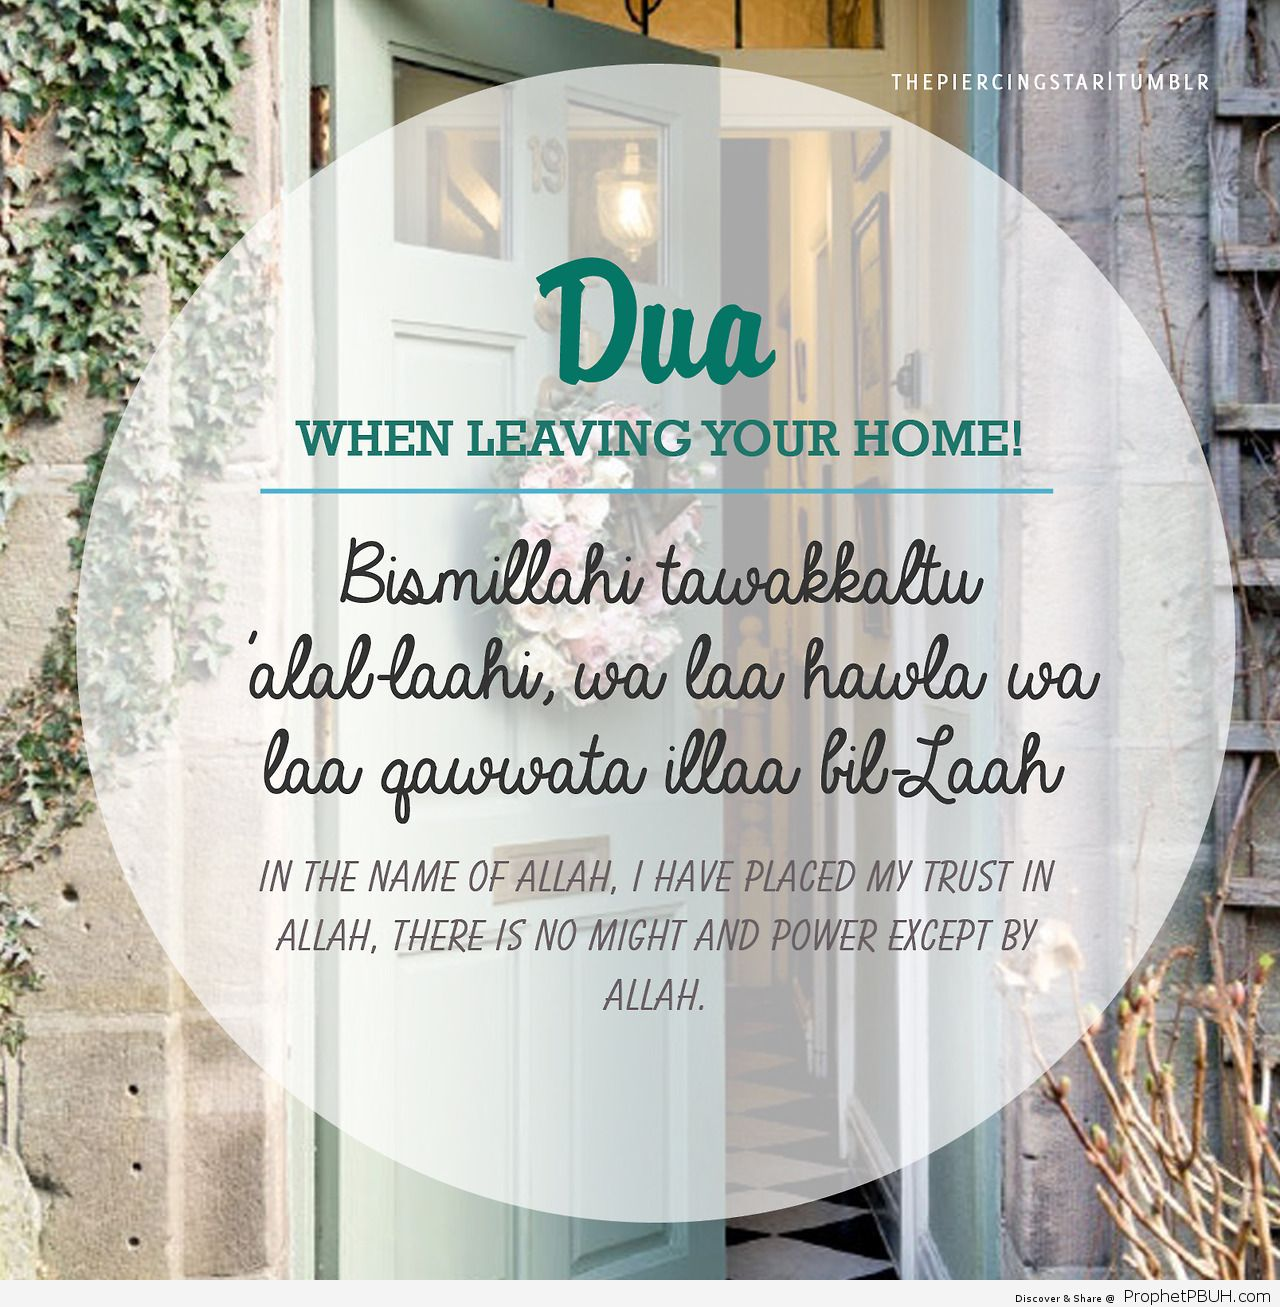 Dua when leaving the home